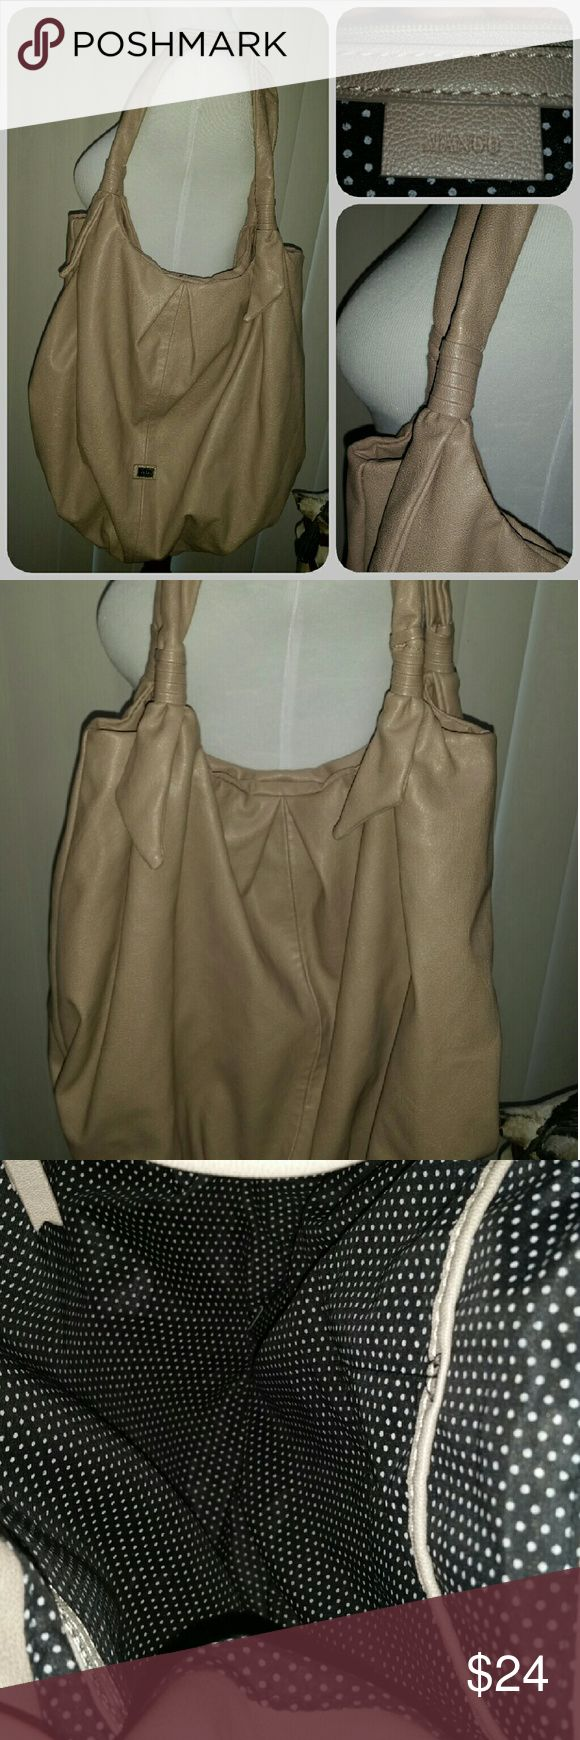 MANGO tote Faux leather light pinkish taupe color (like a light mauve). Snap closure. In excellent condition Mango Bags Totes